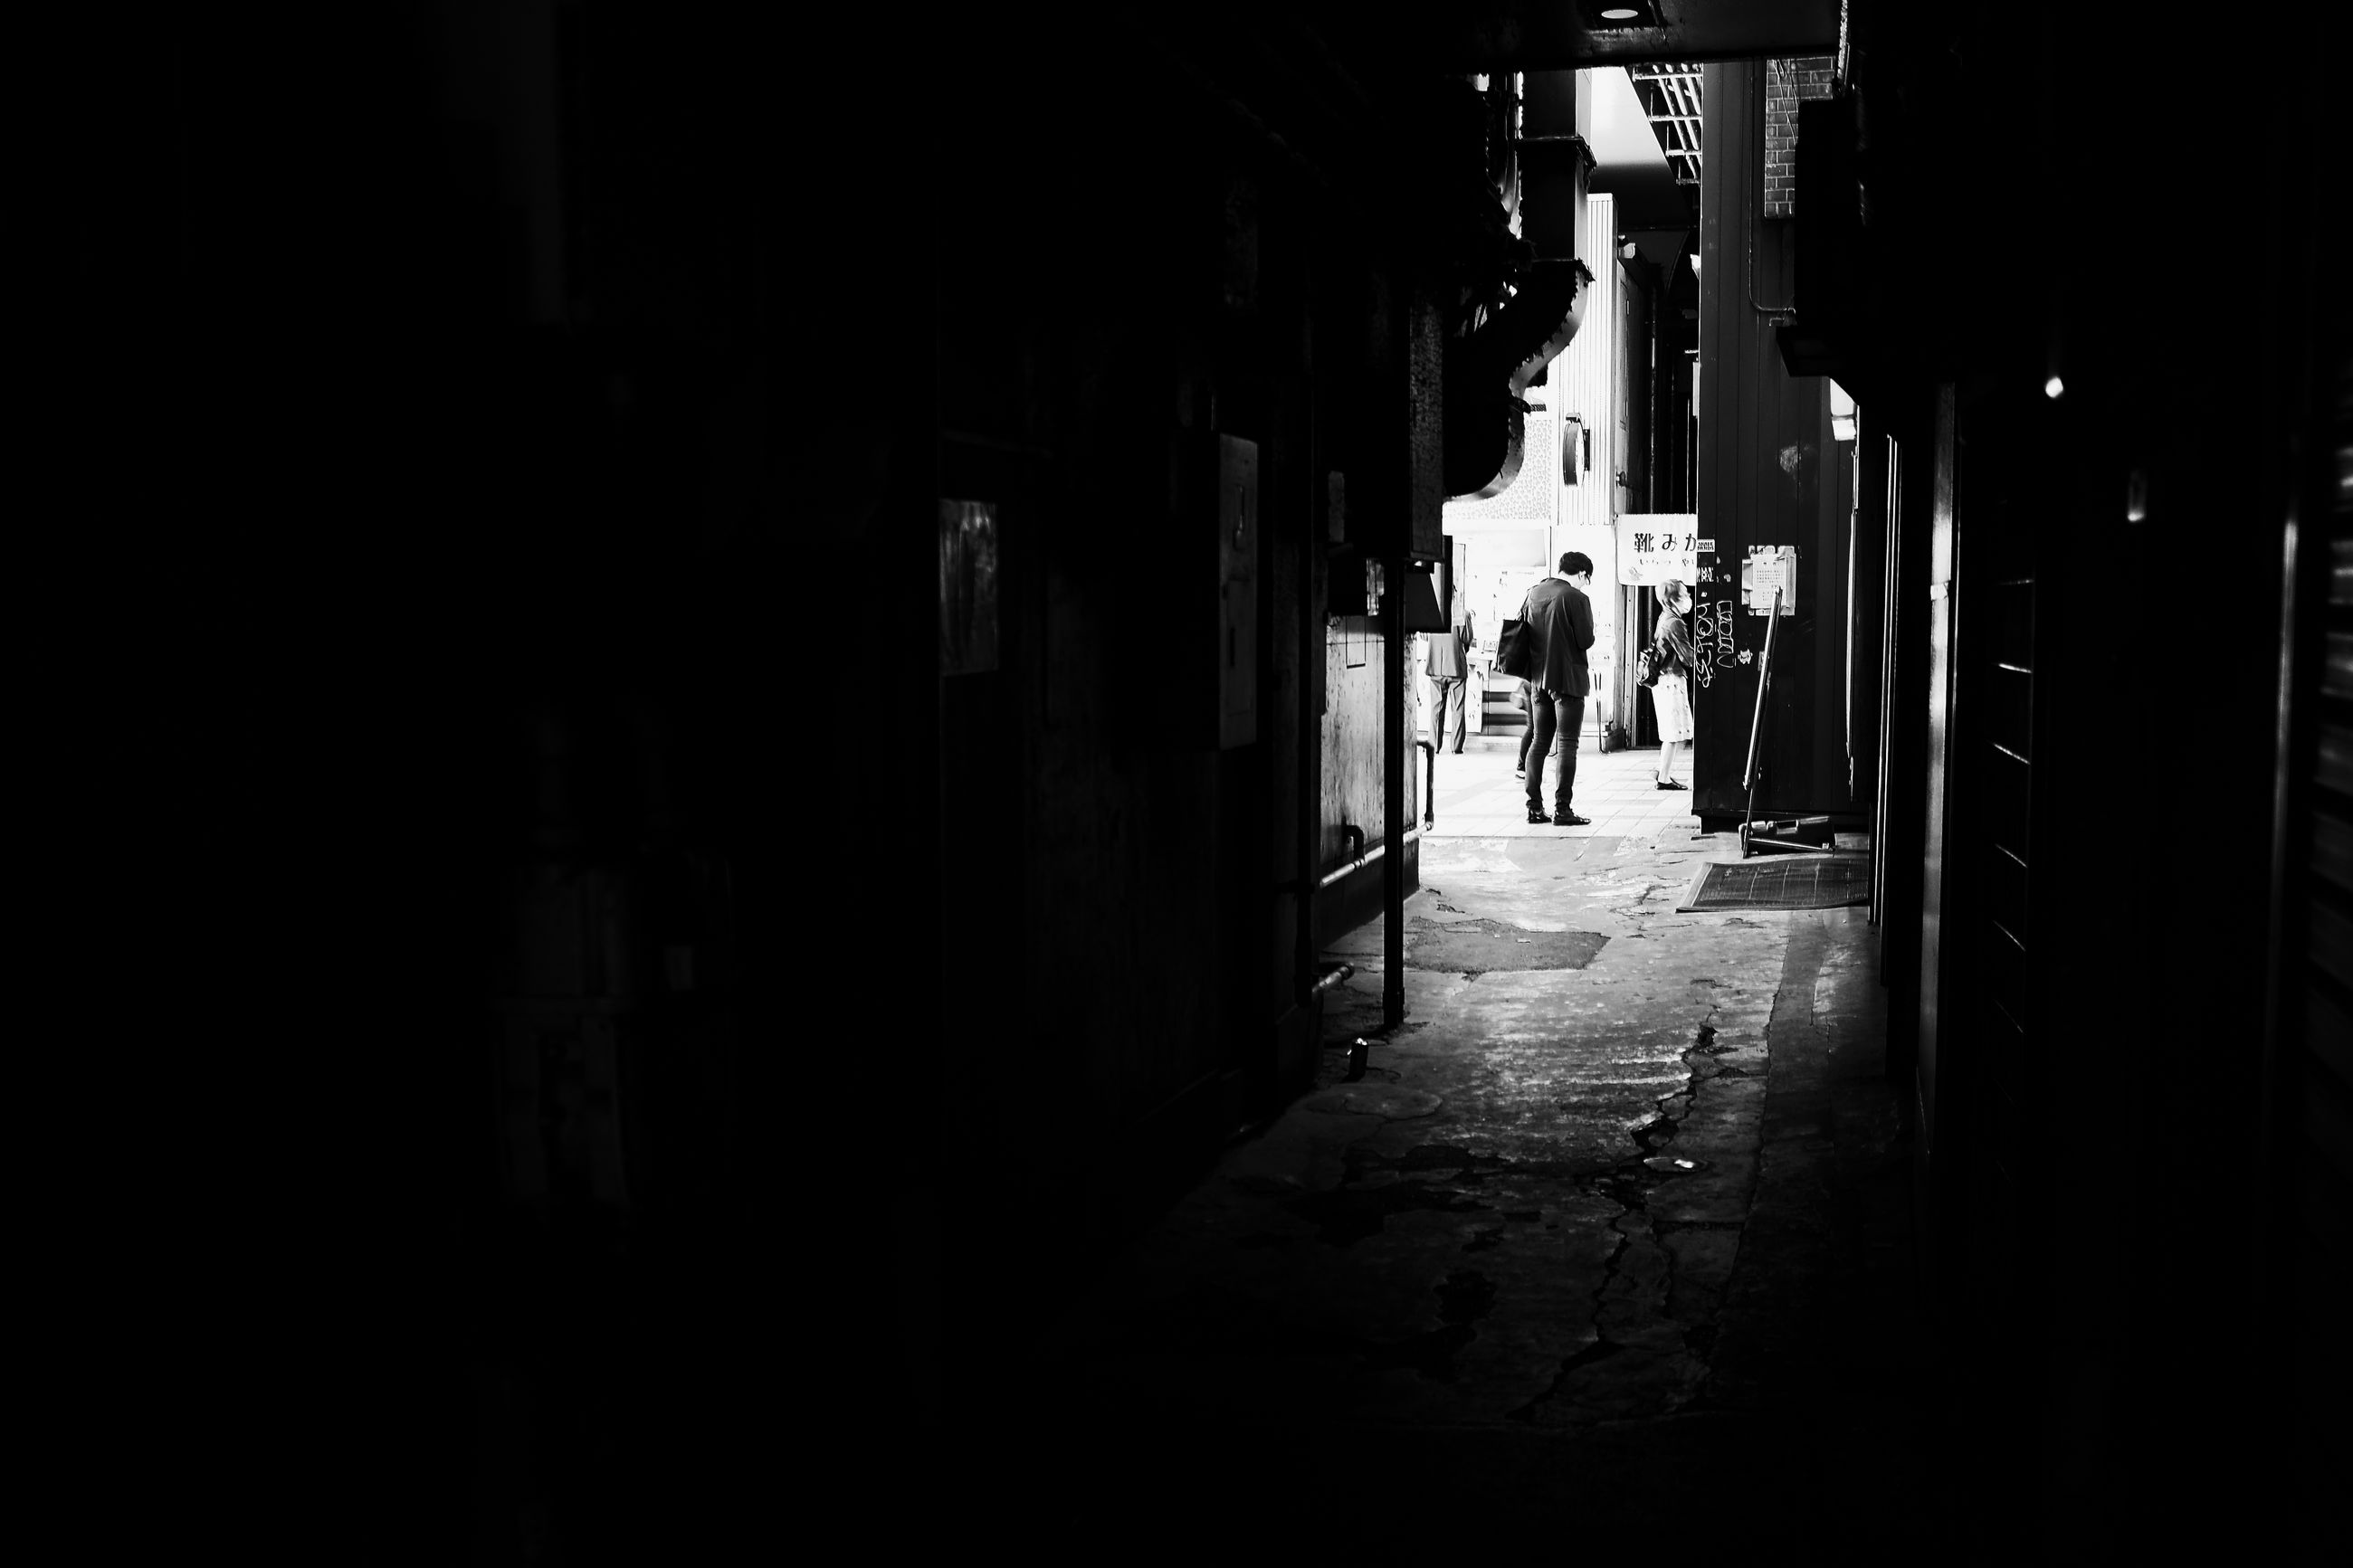 architecture, built structure, real people, walking, group of people, city, lifestyles, men, the way forward, direction, people, building, day, dark, building exterior, outdoors, women, leisure activity, footpath, silhouette, alley